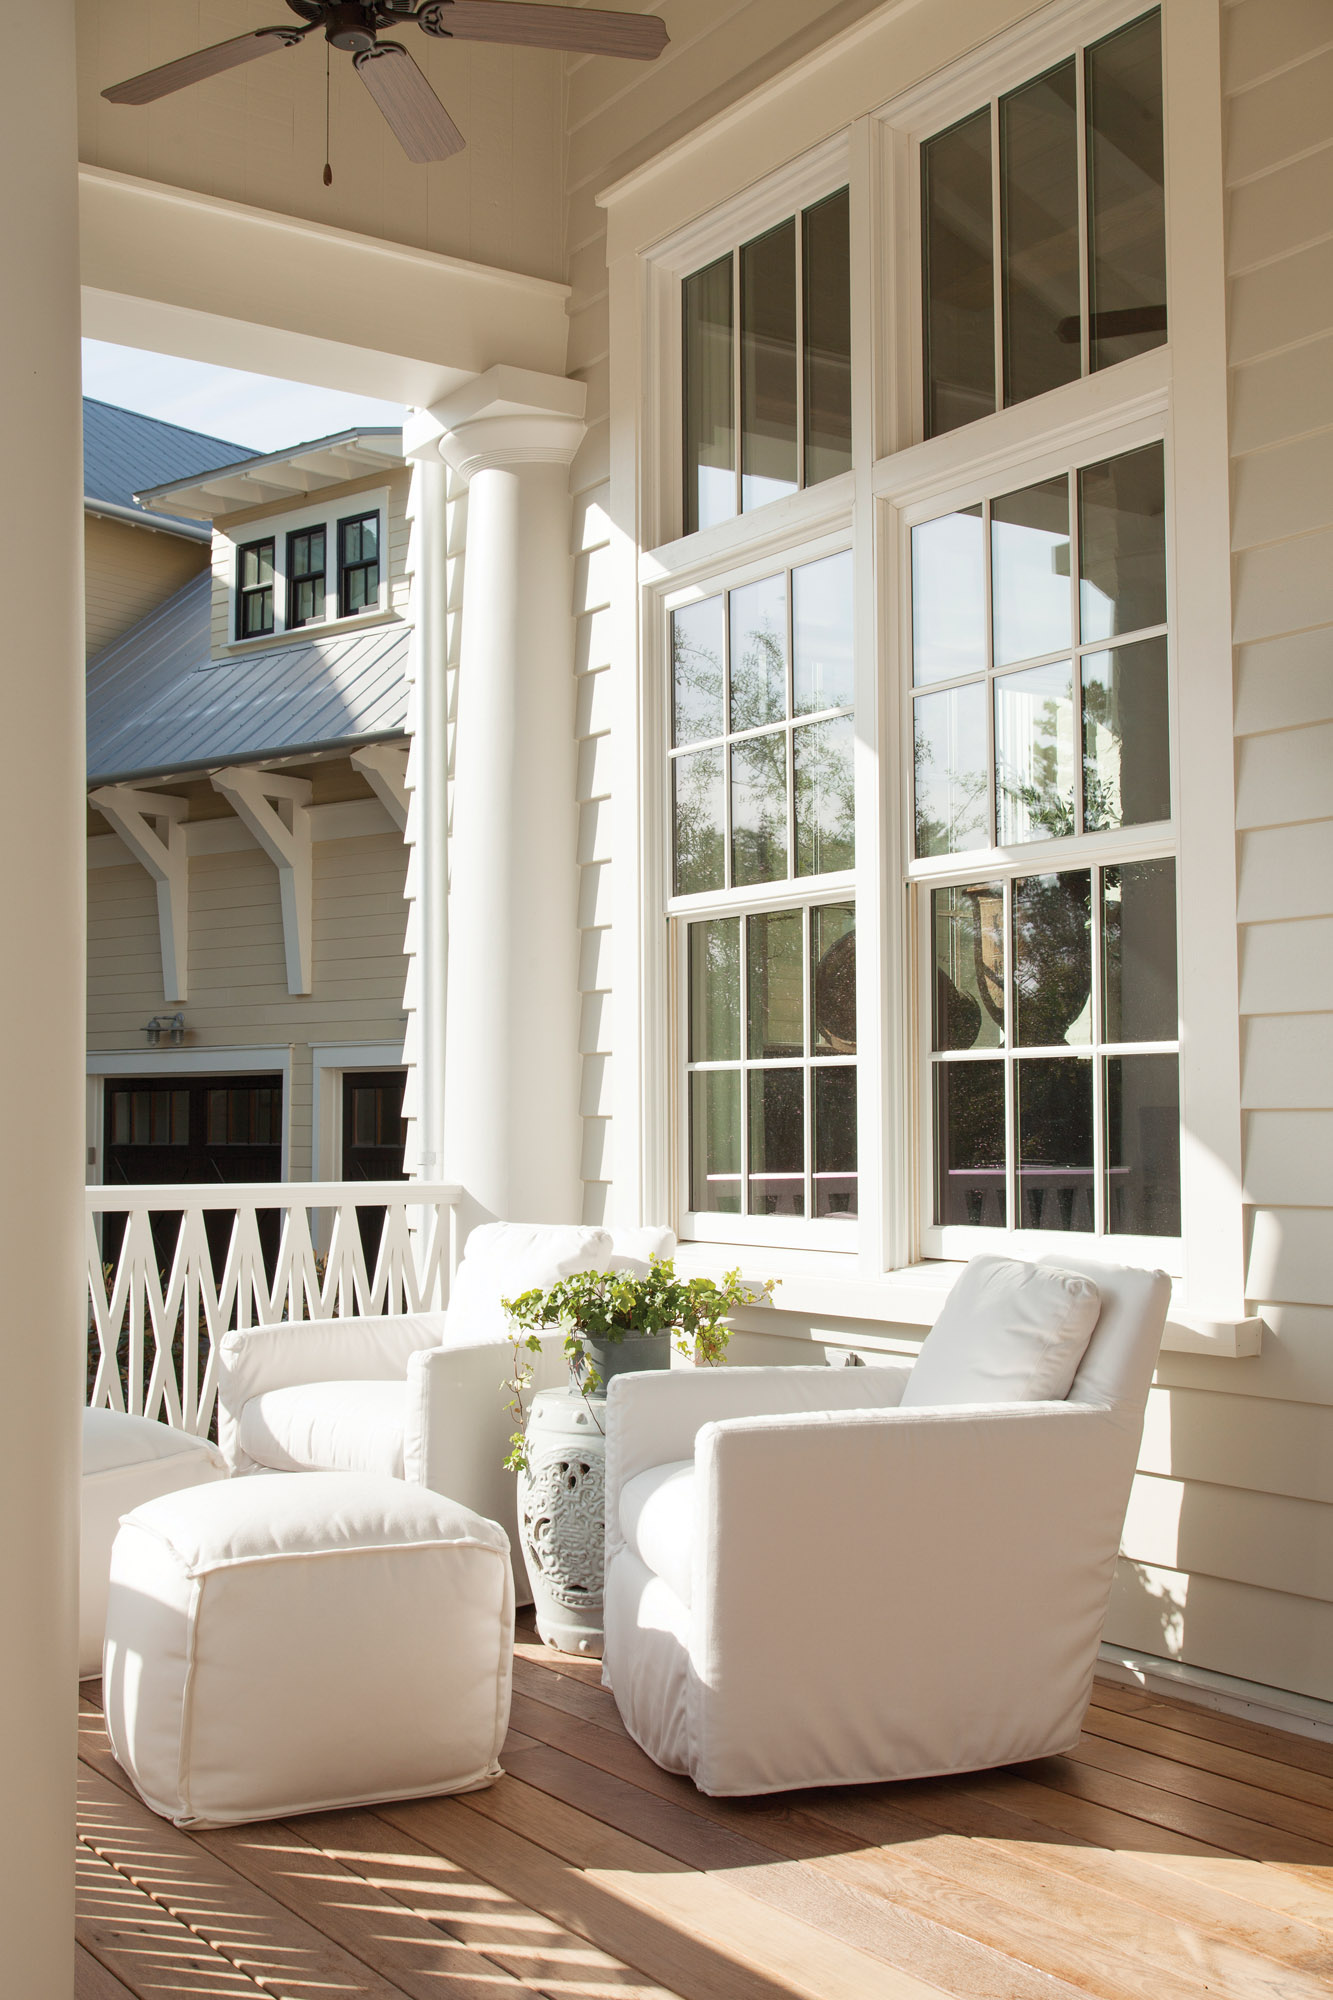 Large windows with transoms above allow the Florida sunlight to pour  inside. Half of the front porch is open.